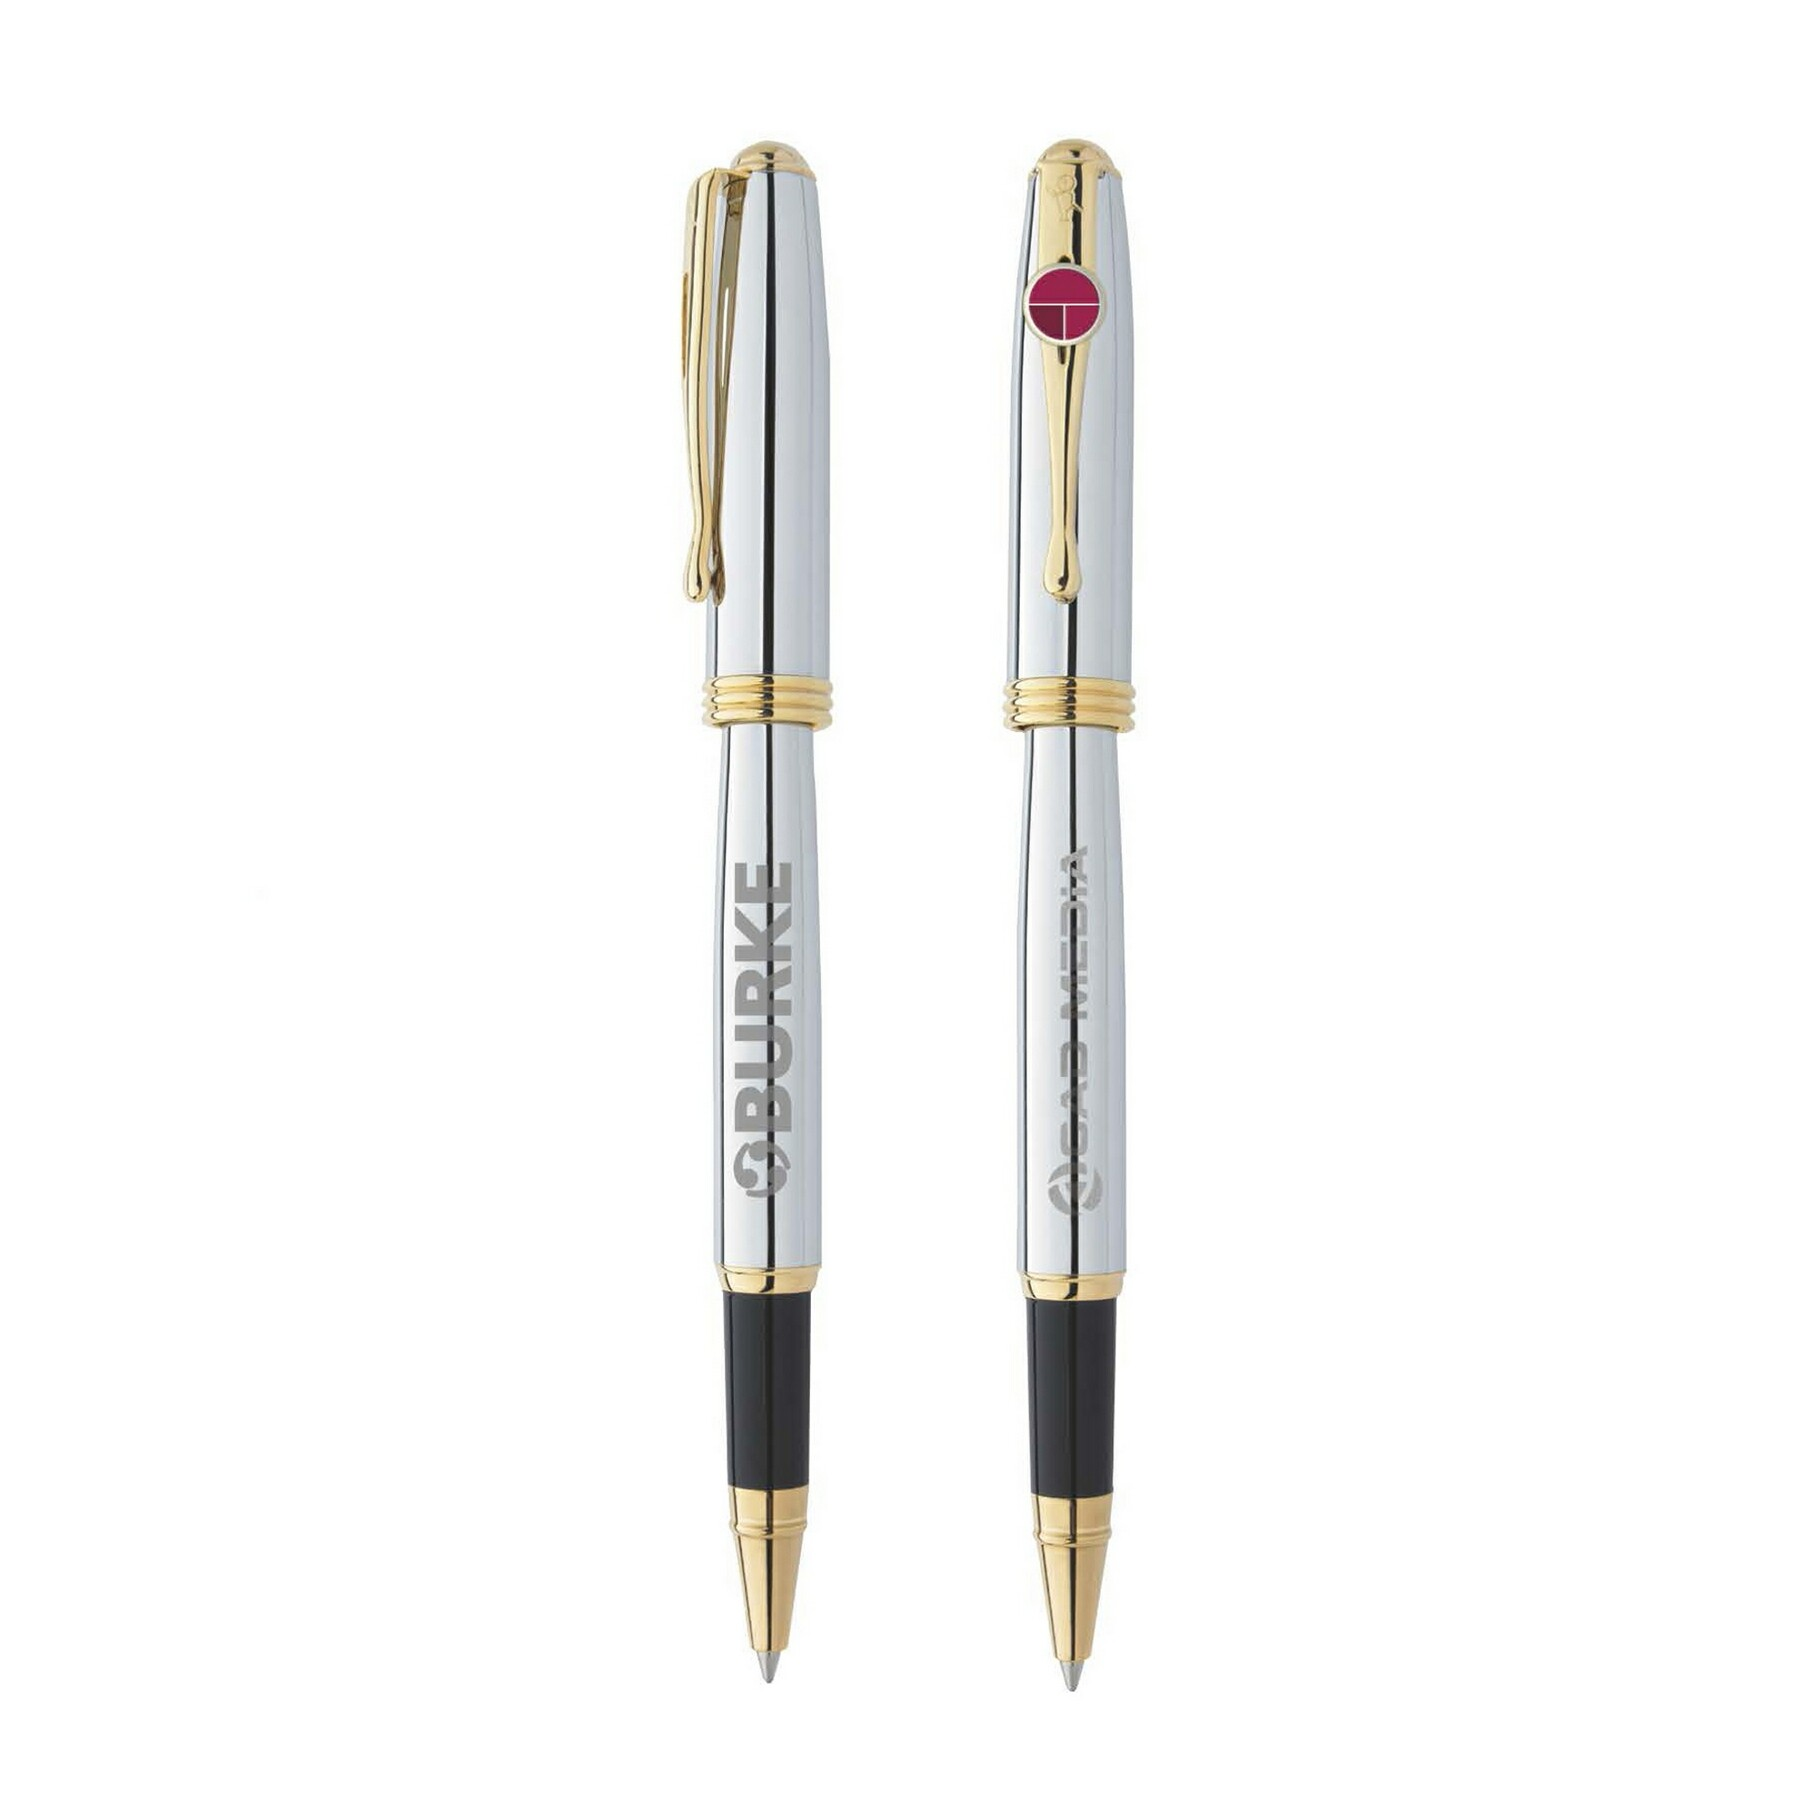 BIC Select Worthington Chrome Roller Pen - Laser Engraved Imprint, #WCCR